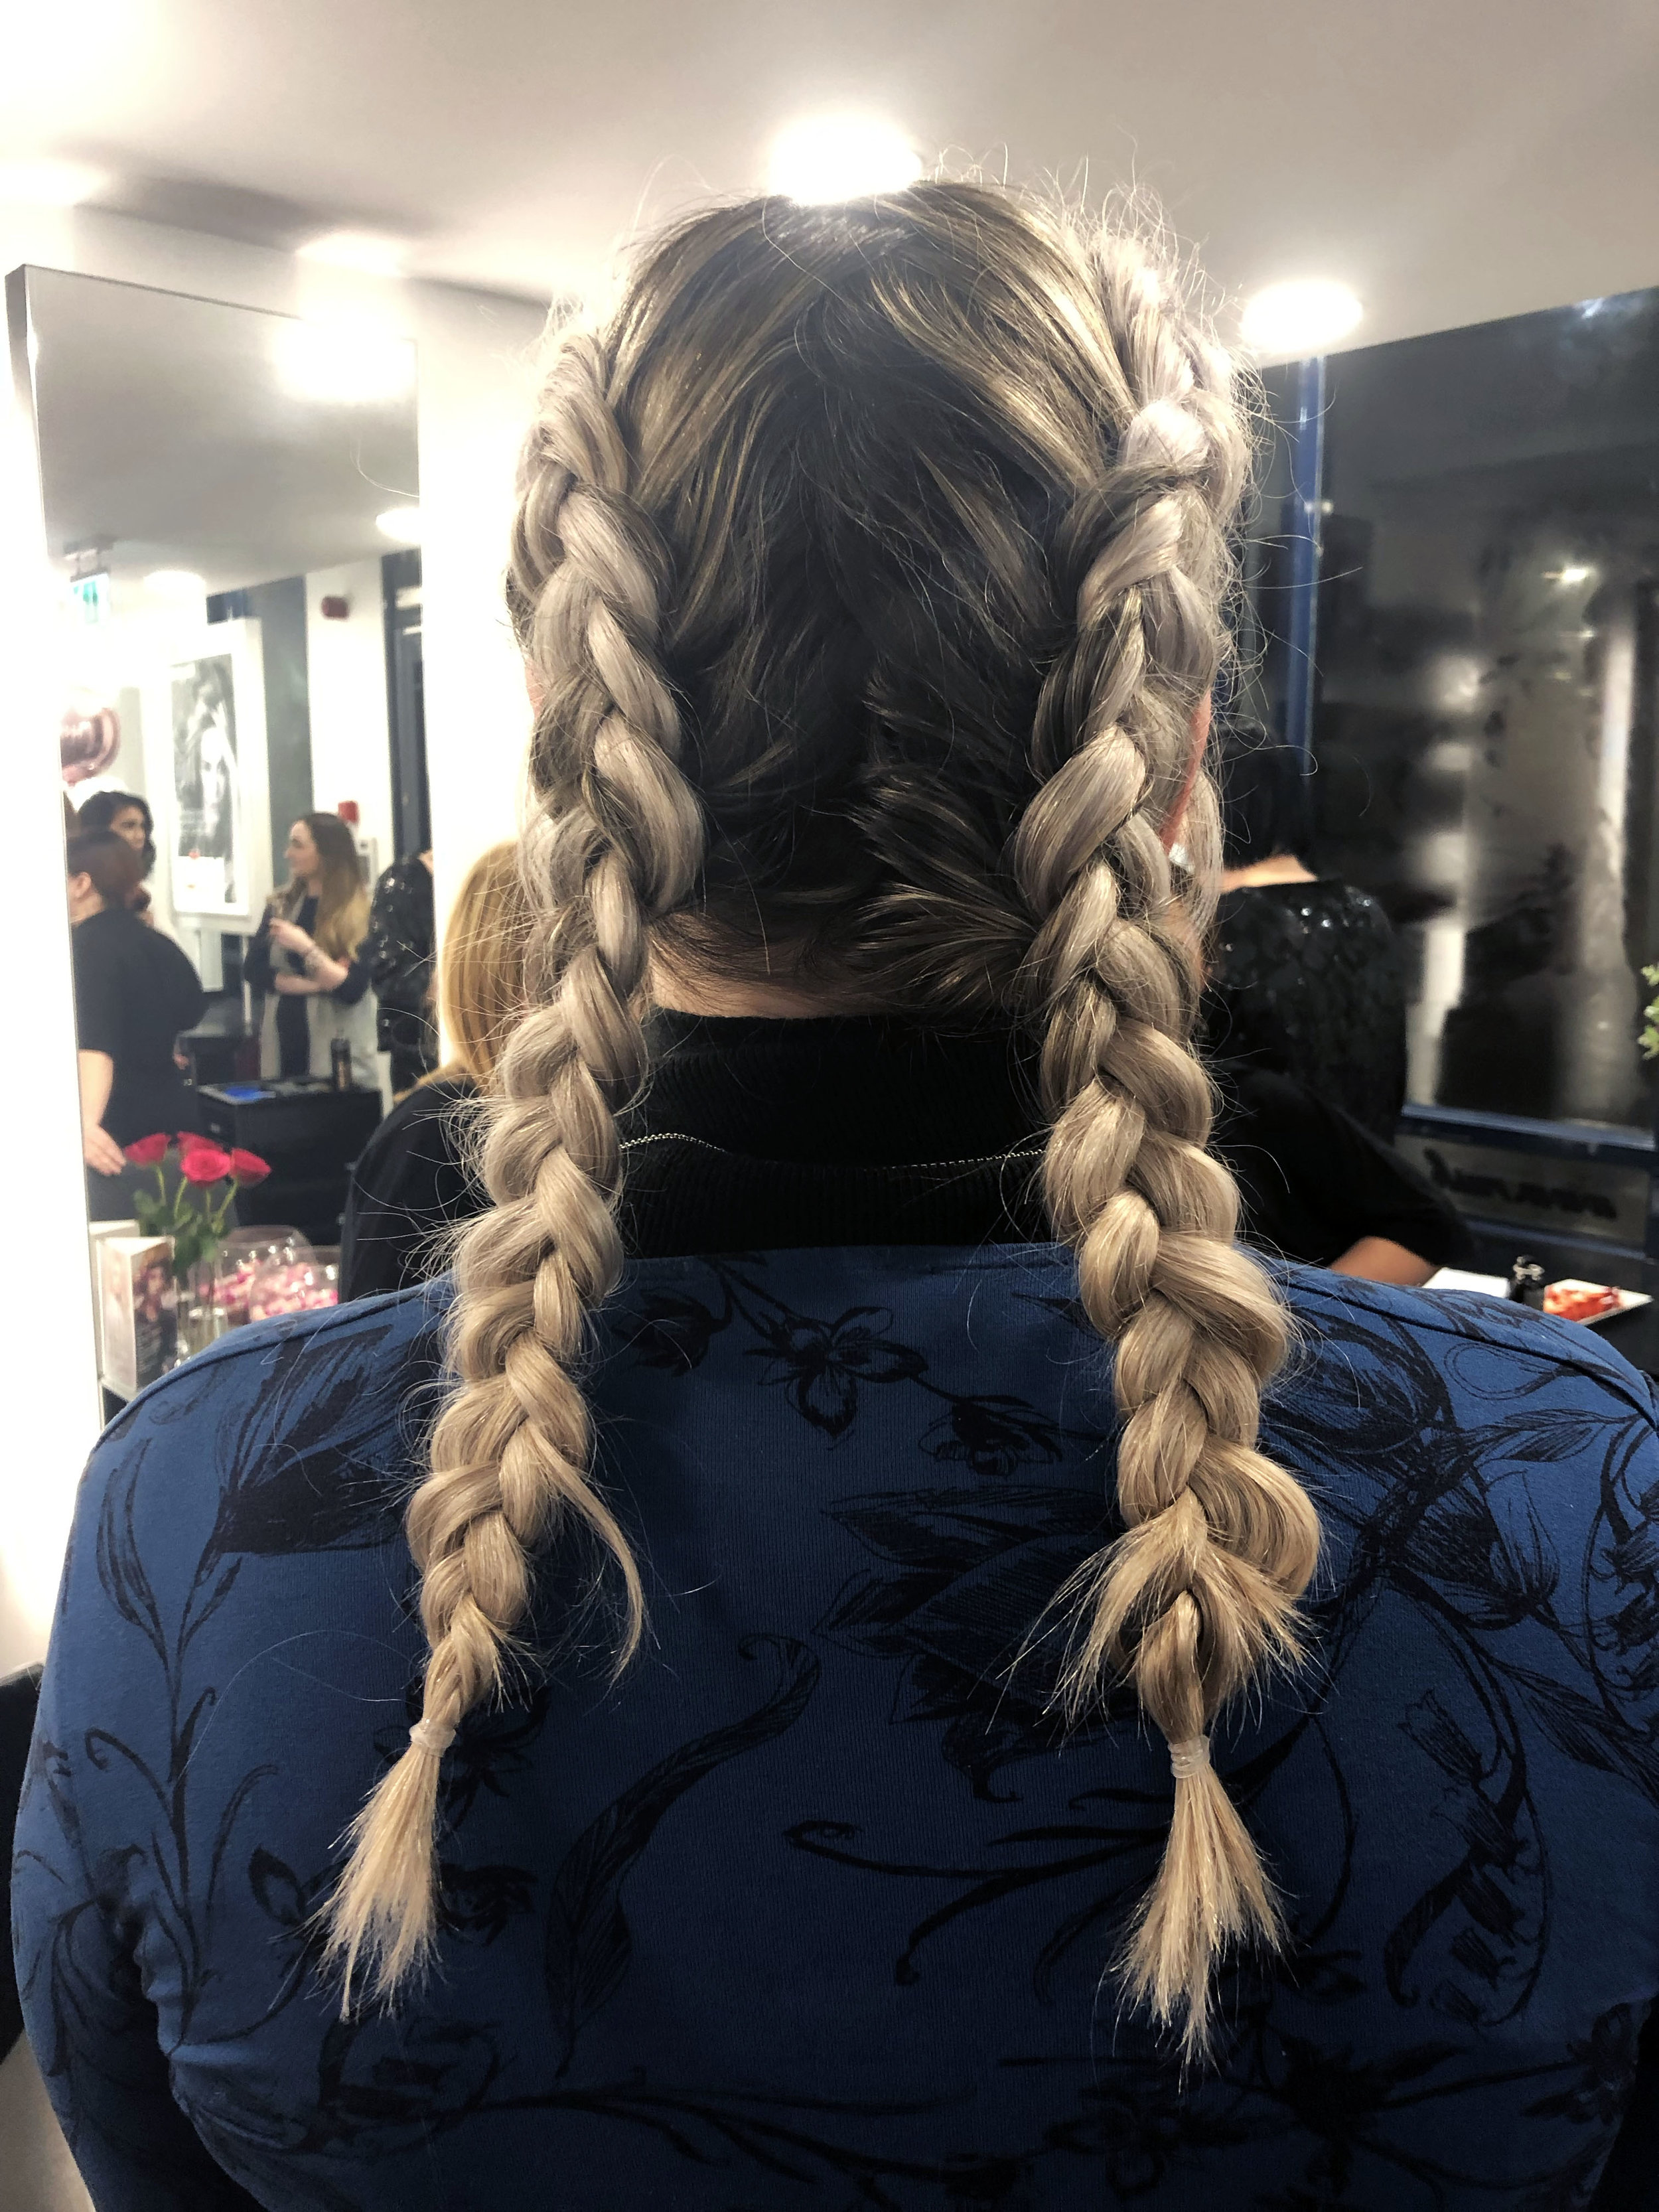 Rush Hair and Beauty York Event 2019